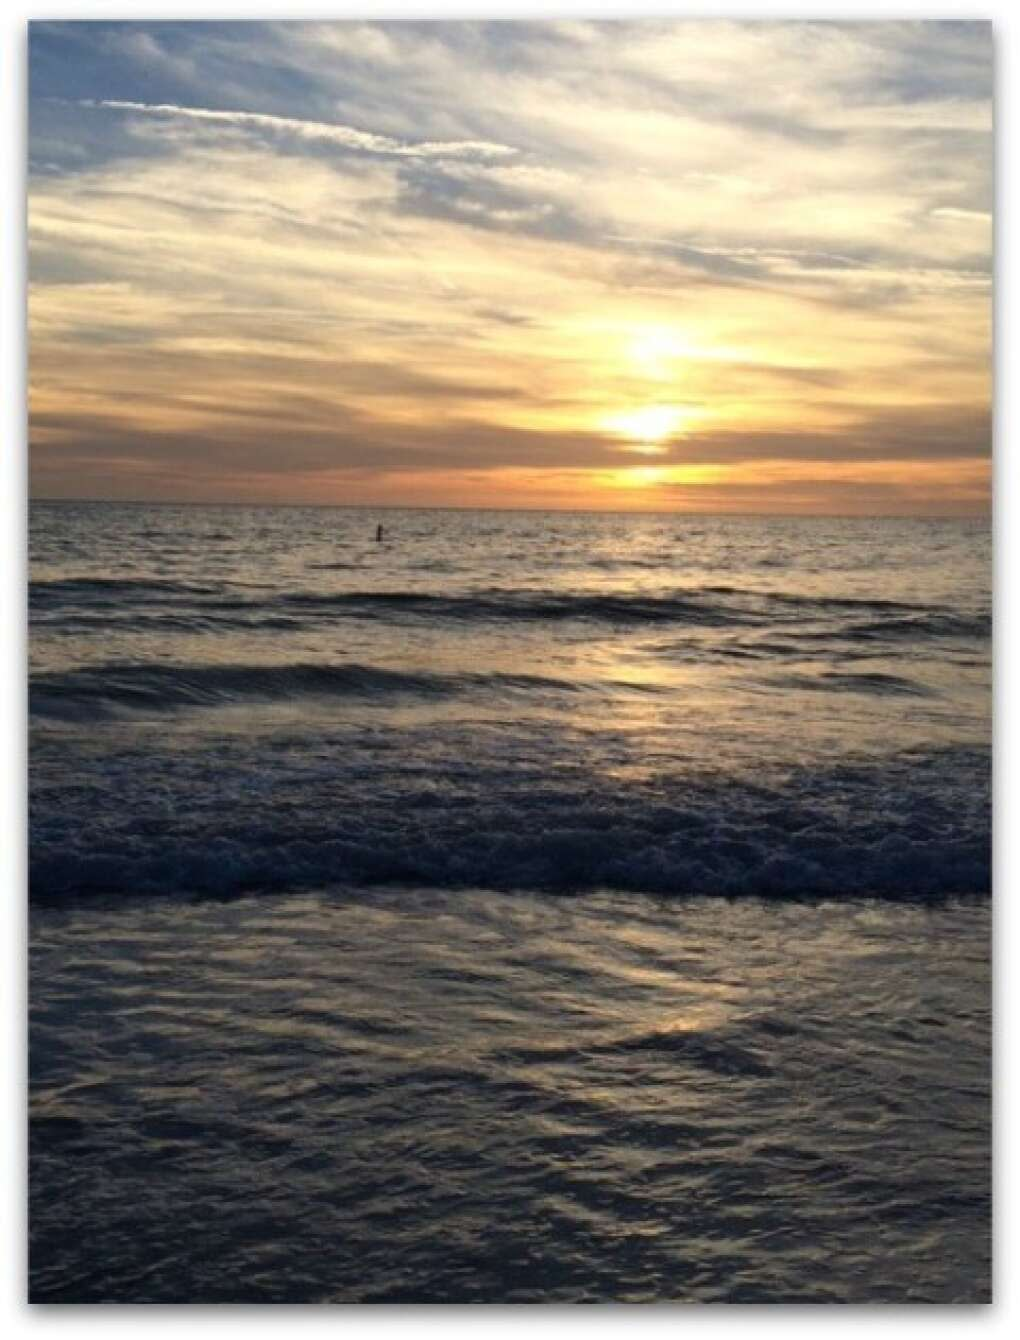 A sunset over the Anna Maria Island waters